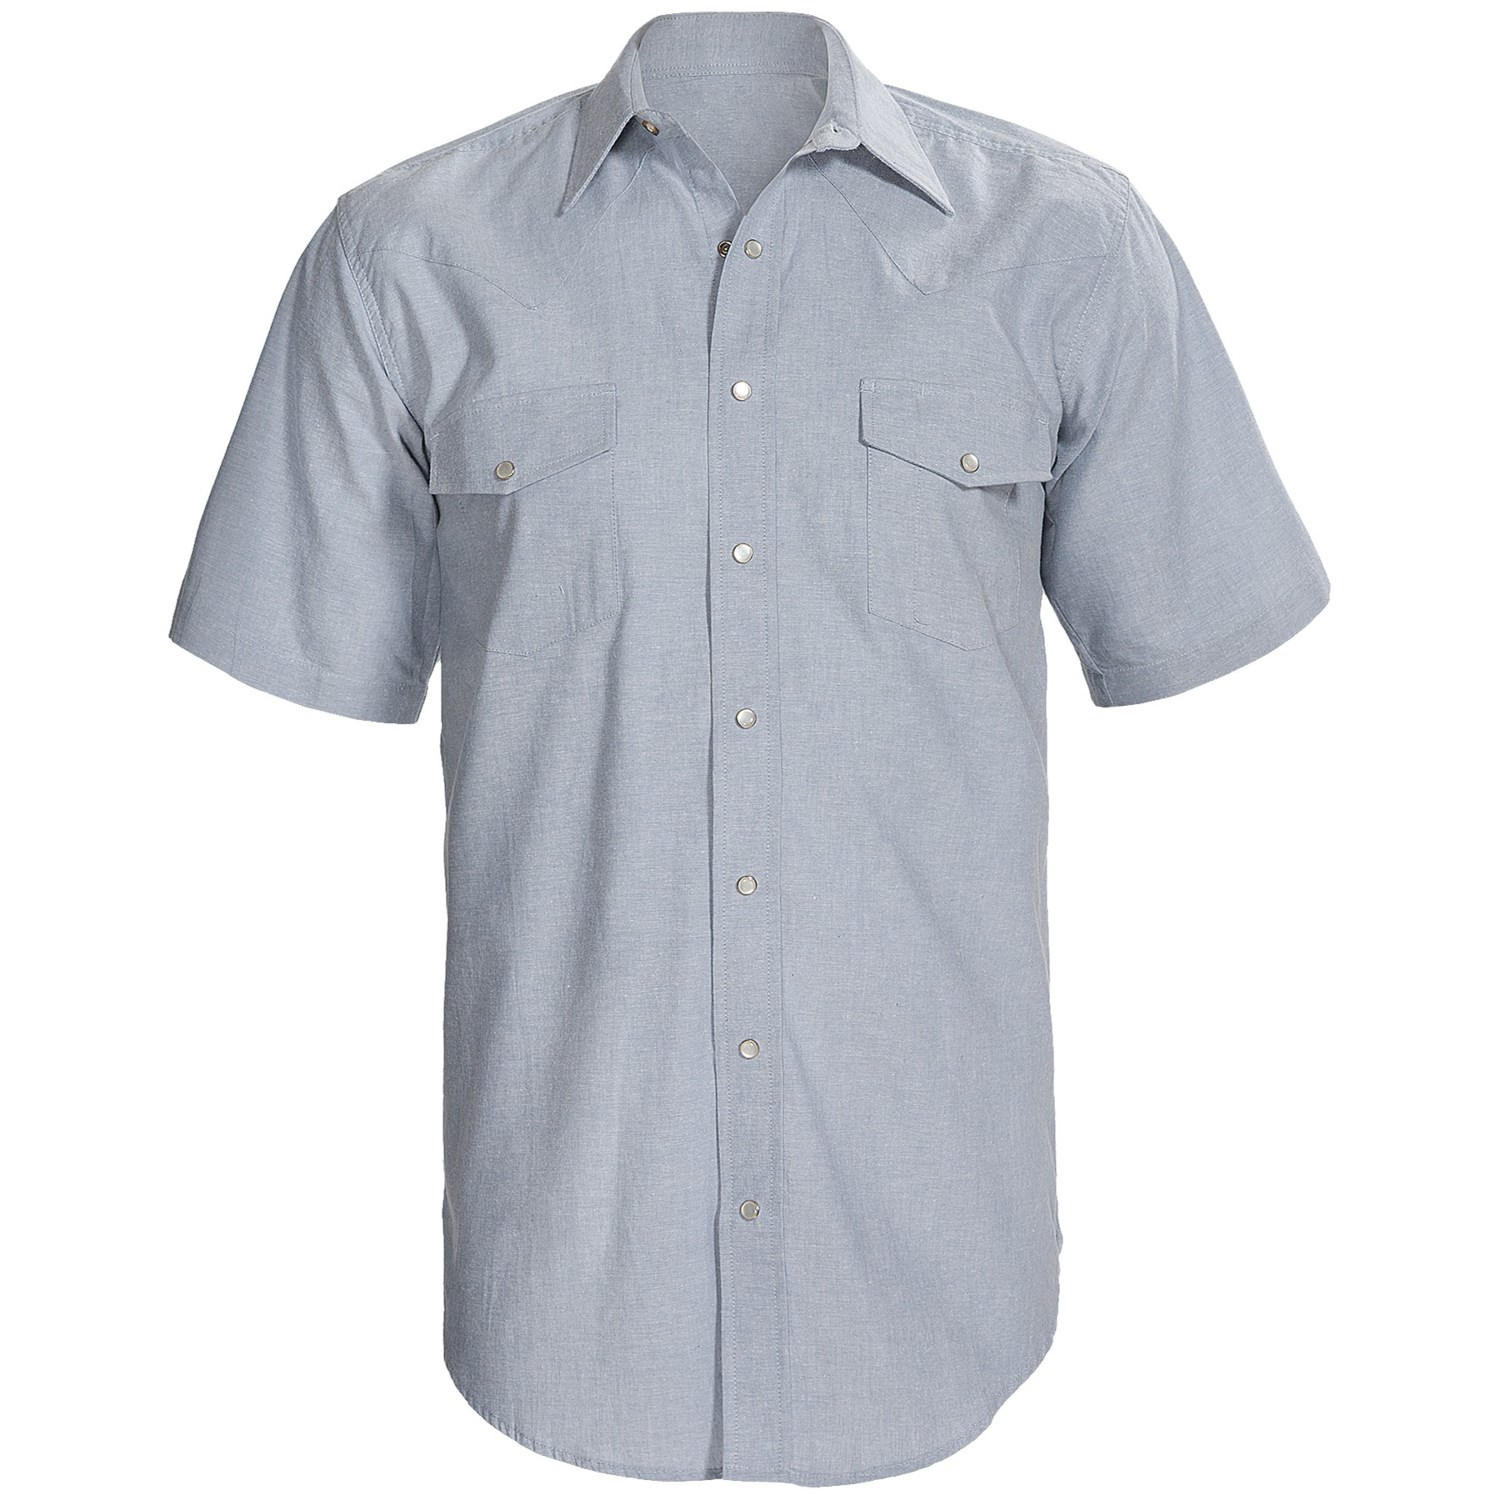 Western Snap Front Shirt For Big And Tall Men 8006p